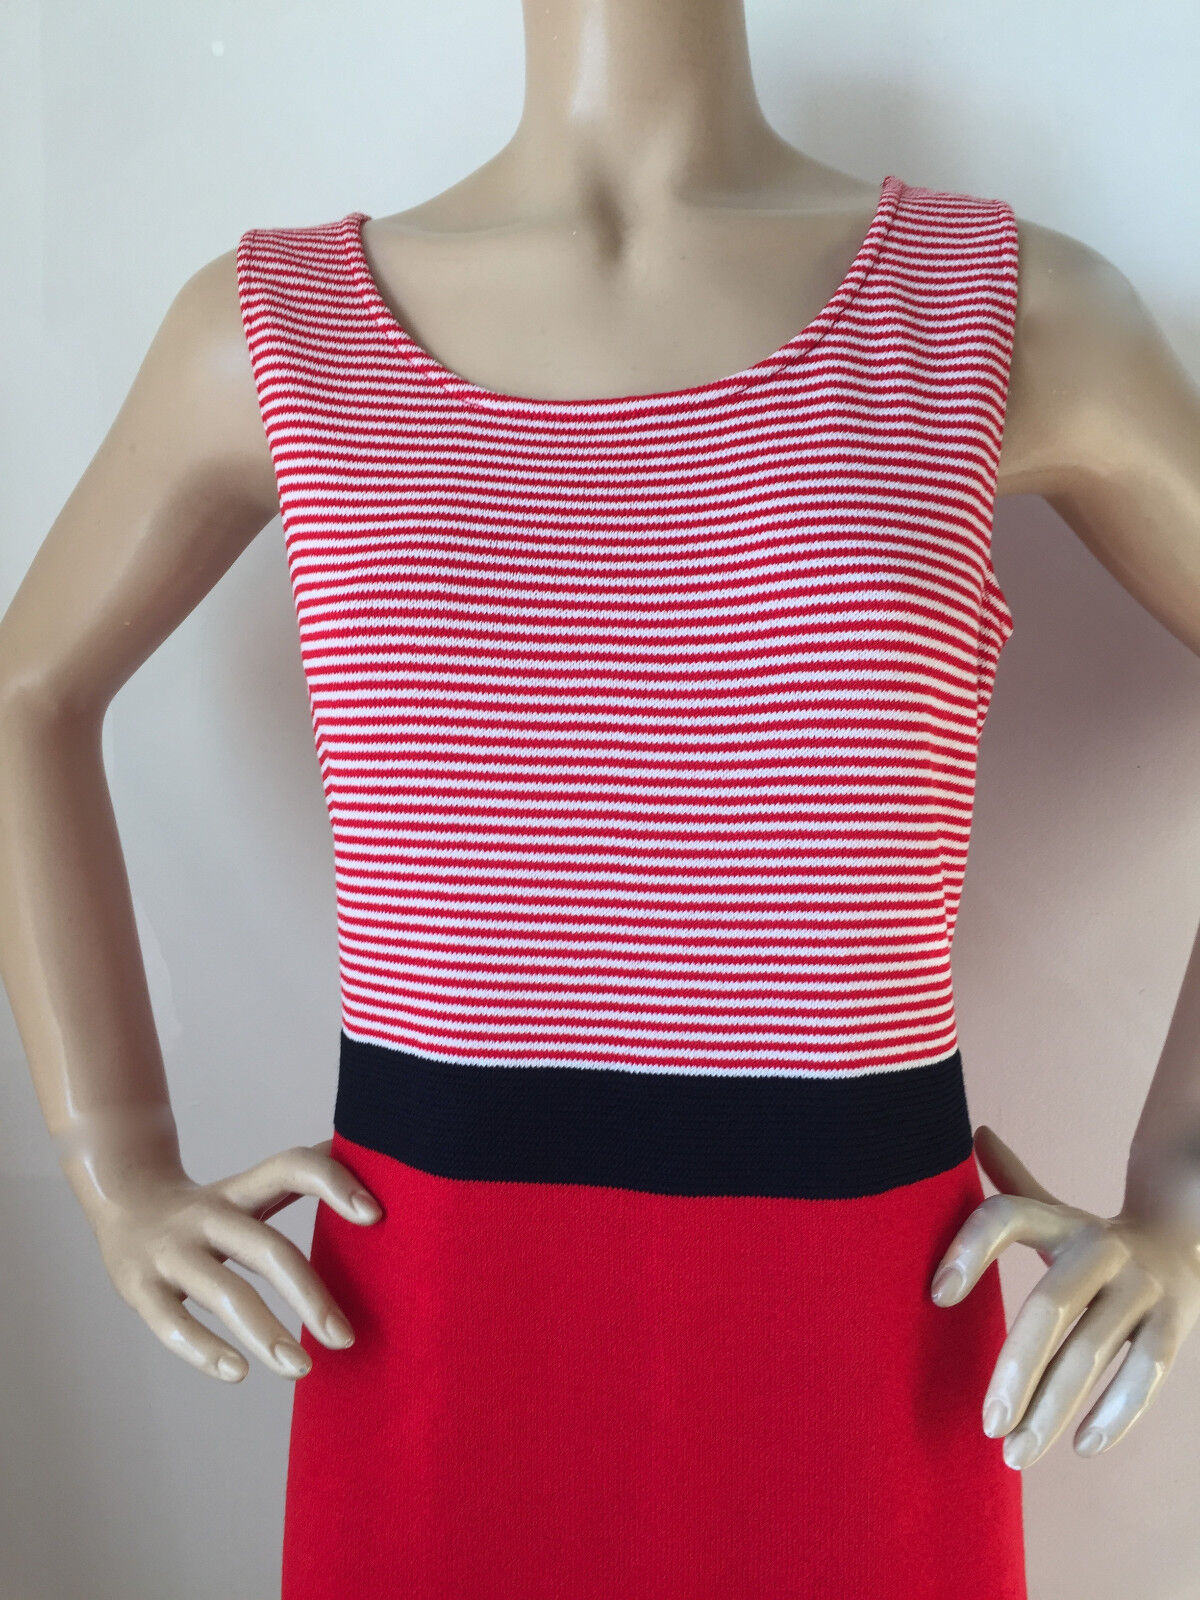 NWT St John Knit dress red sea coral & navy navy navy size 10 santana sheath 442362